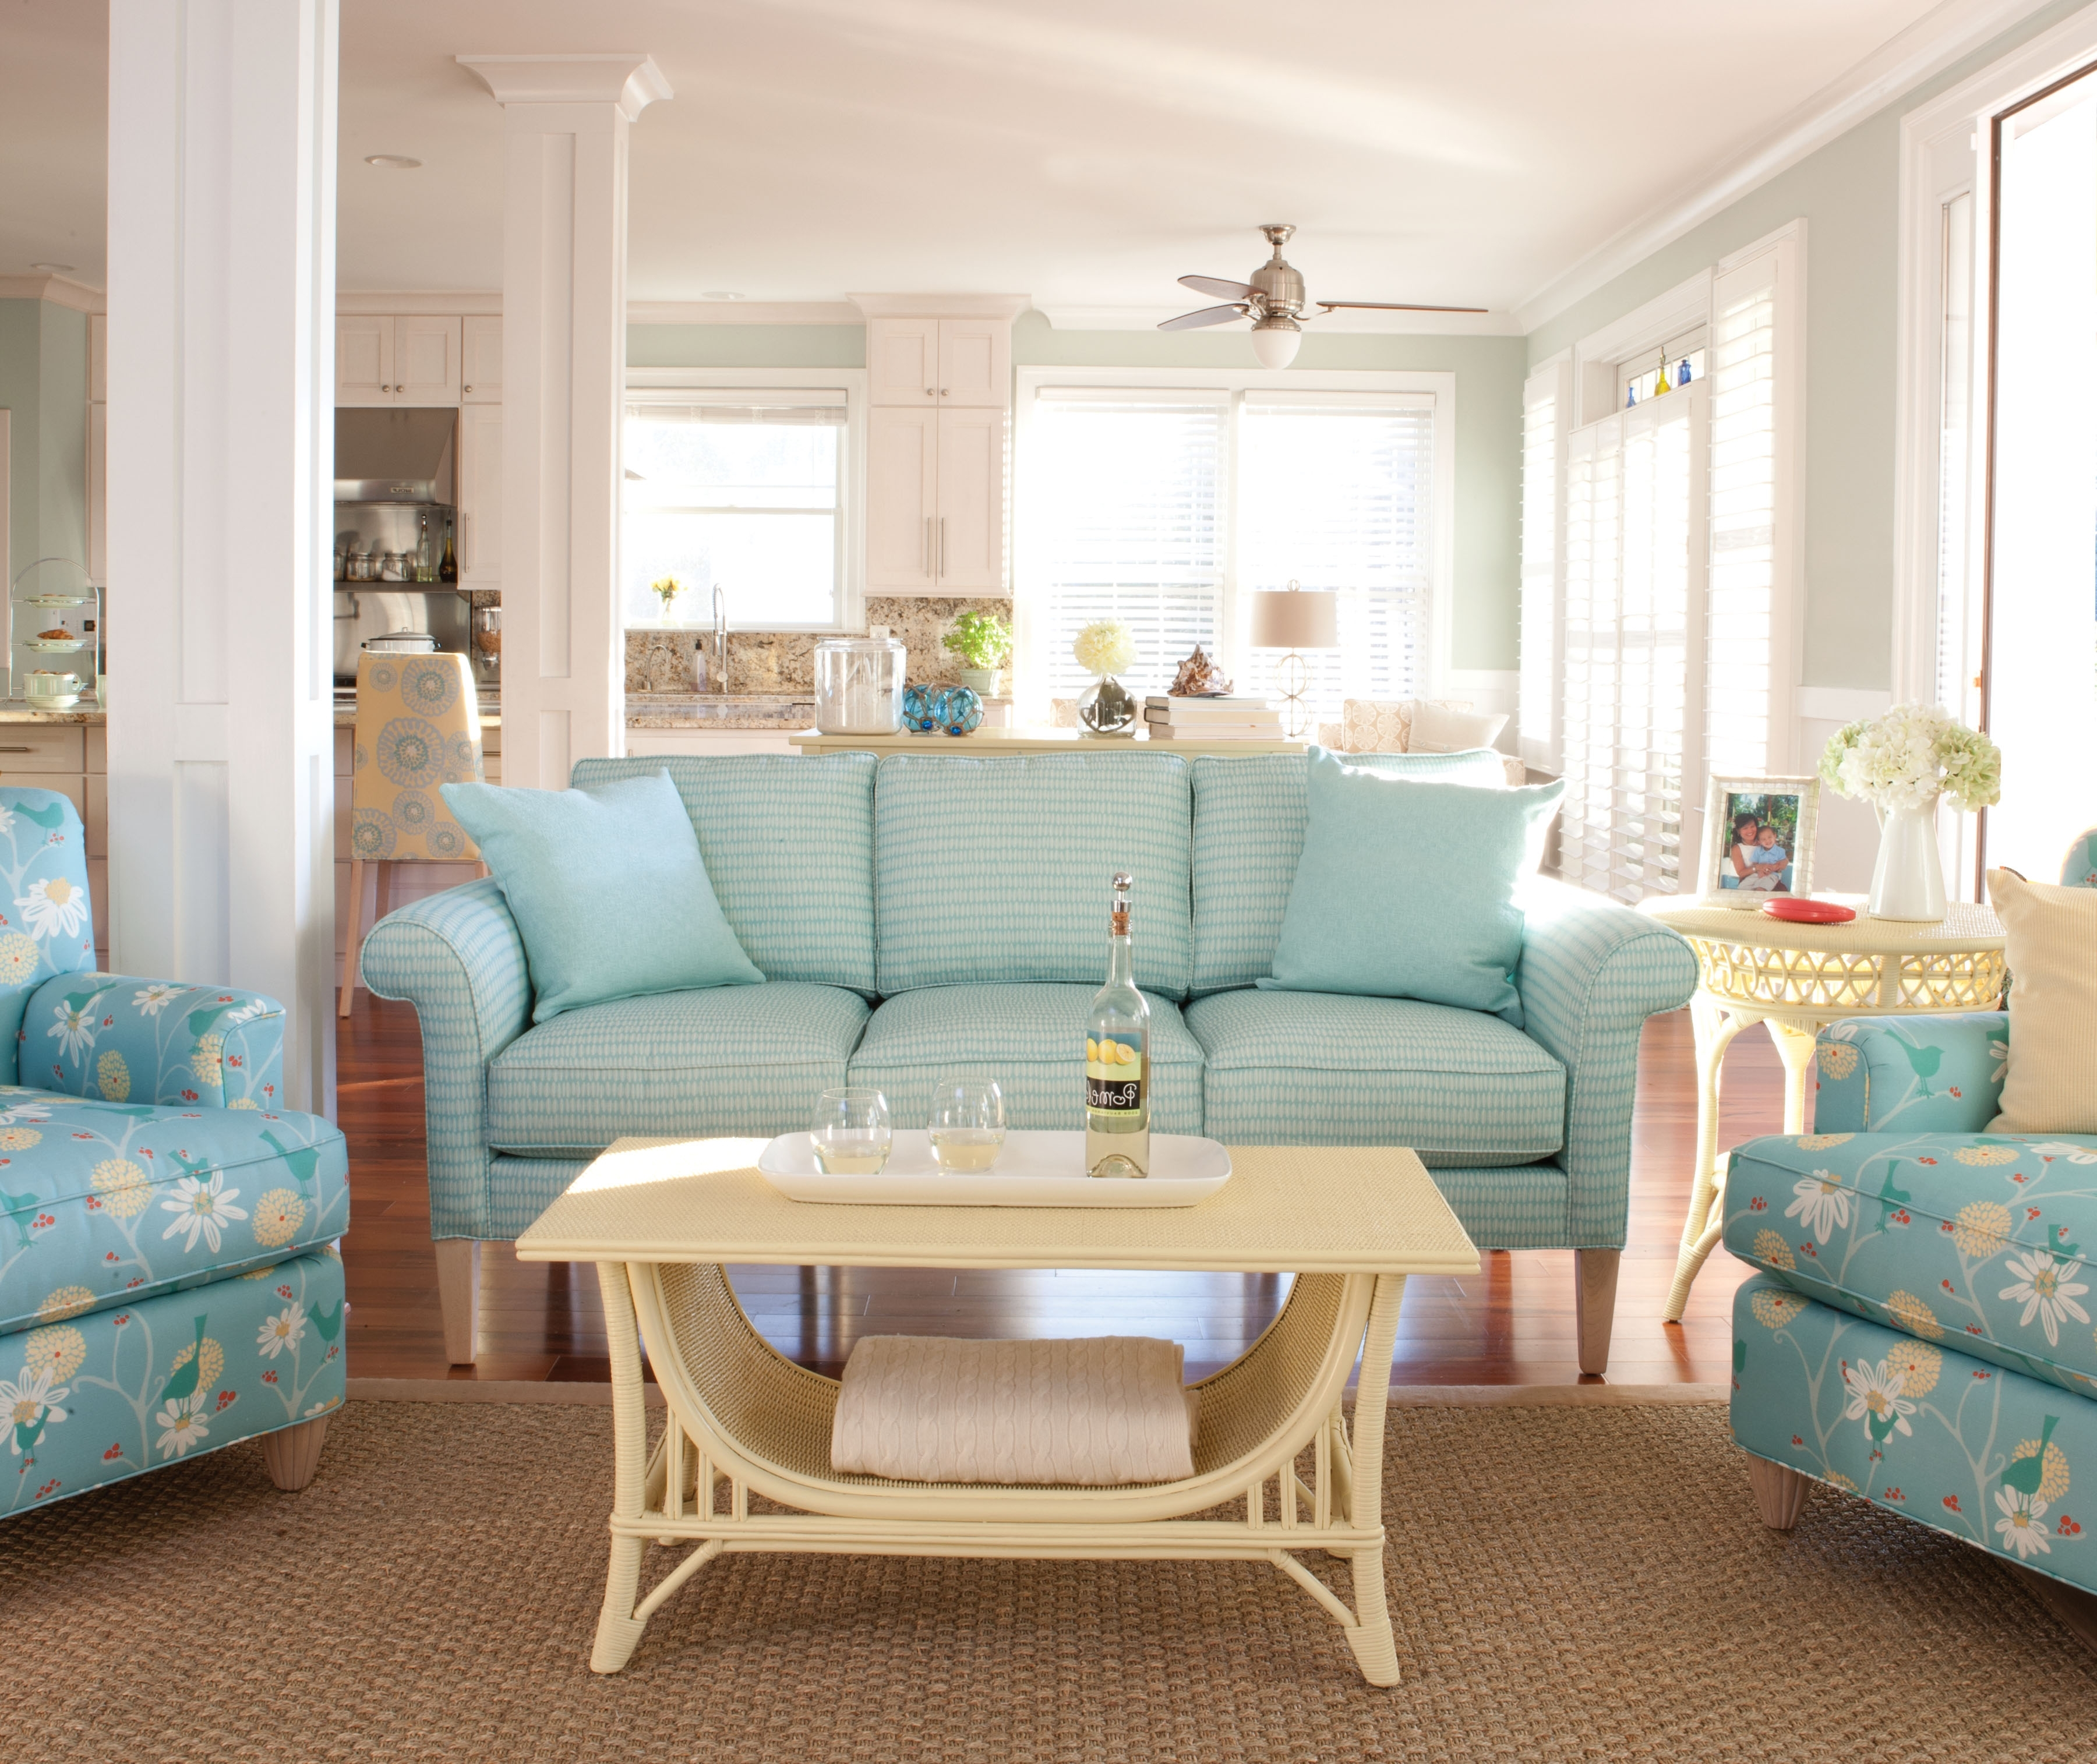 Country Cottage Sofas And Chairs Pertaining To Fashionable Mix And Match Patterns In Your Interior – Upholstered On Furniture (View 7 of 20)